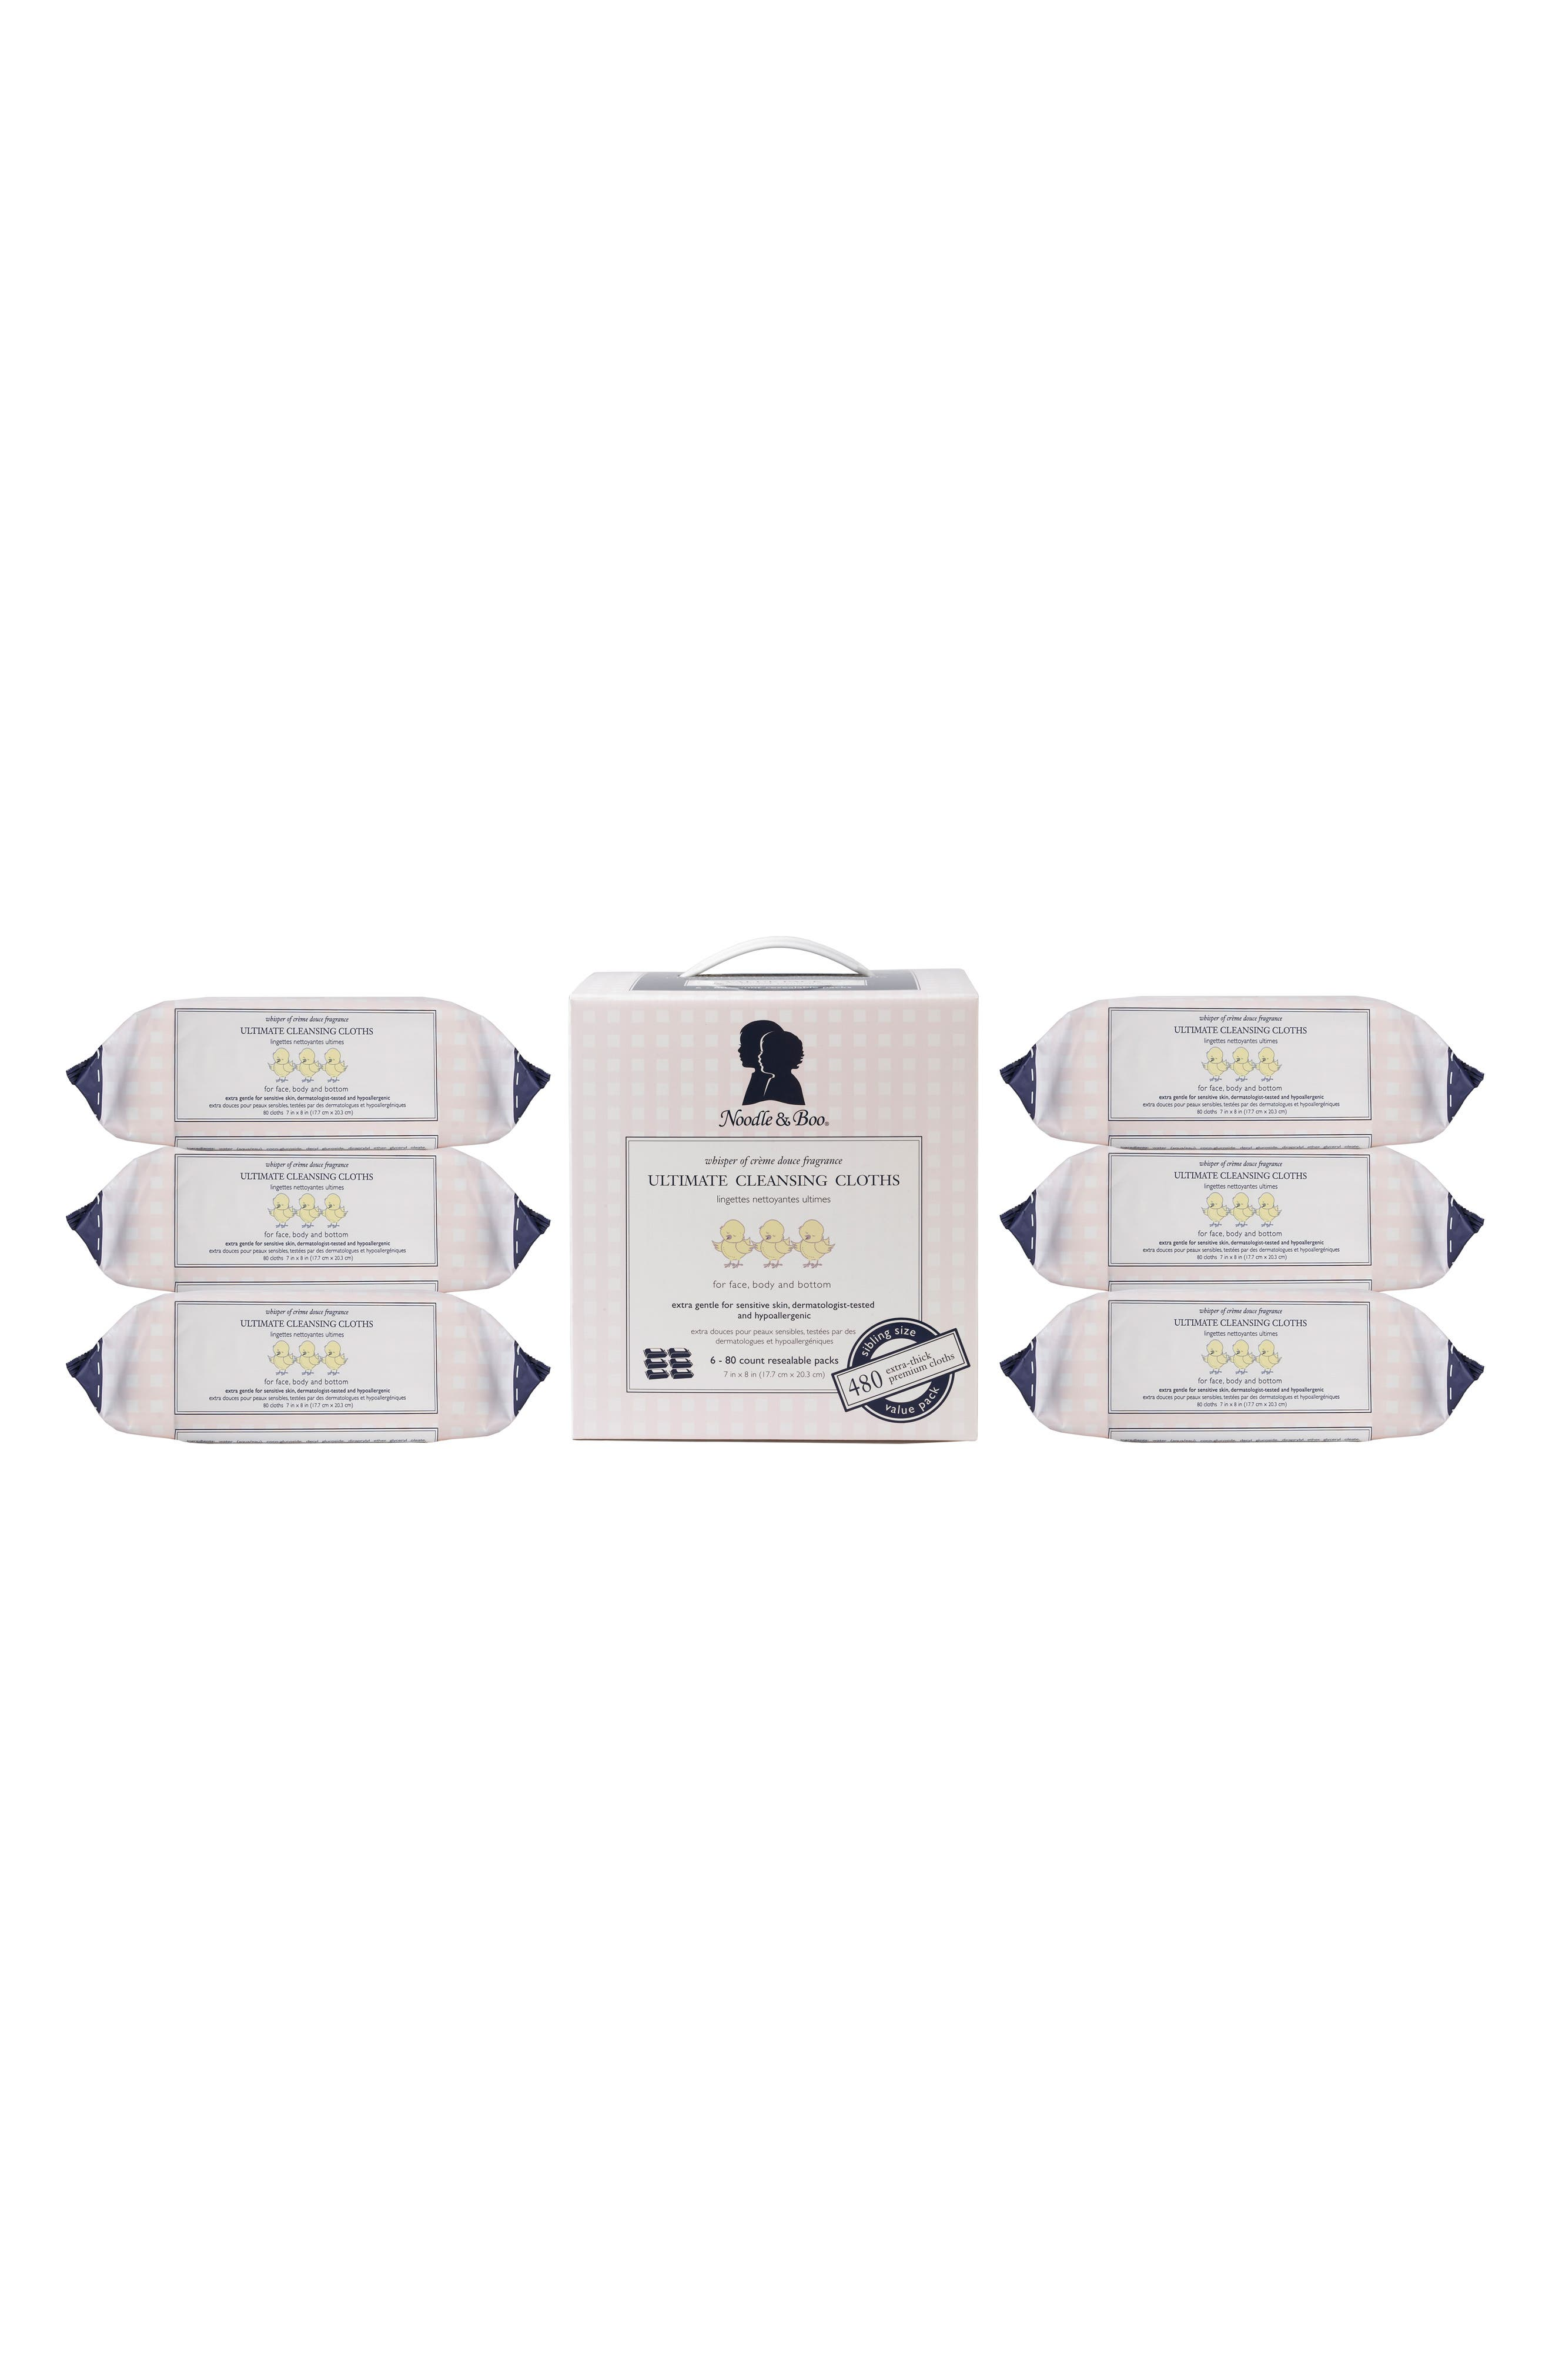 6-Pack Ultimate Cleansing Cloths,                             Alternate thumbnail 3, color,                             White